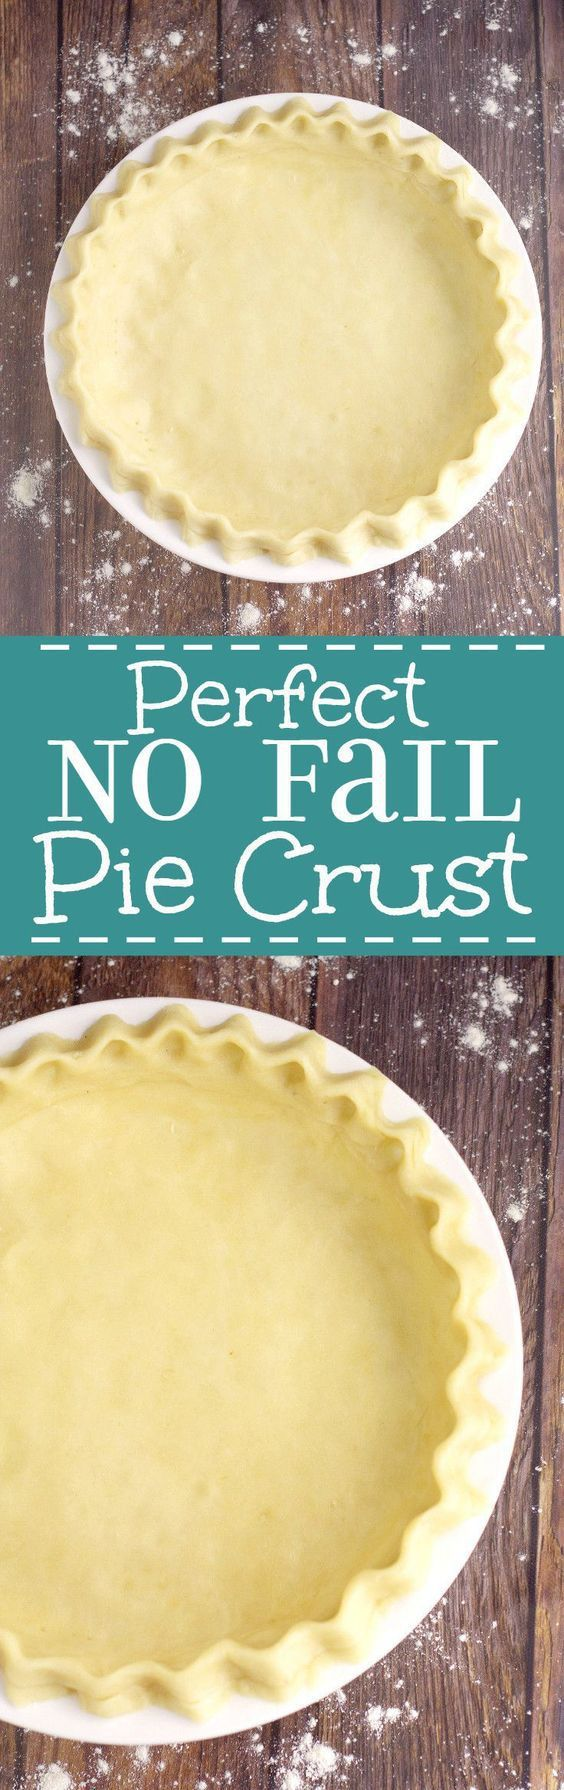 Easy and Perfect No Fail Pie Crust Recipe and Tutorial | The Gracious Wife - The BEST Classic, Improved and Traditional Thanksgiving Dinner Menu Favorites Recipes - Main Dishes, Side Dishes, Appetizers, Salads, Yummy Desserts and more!